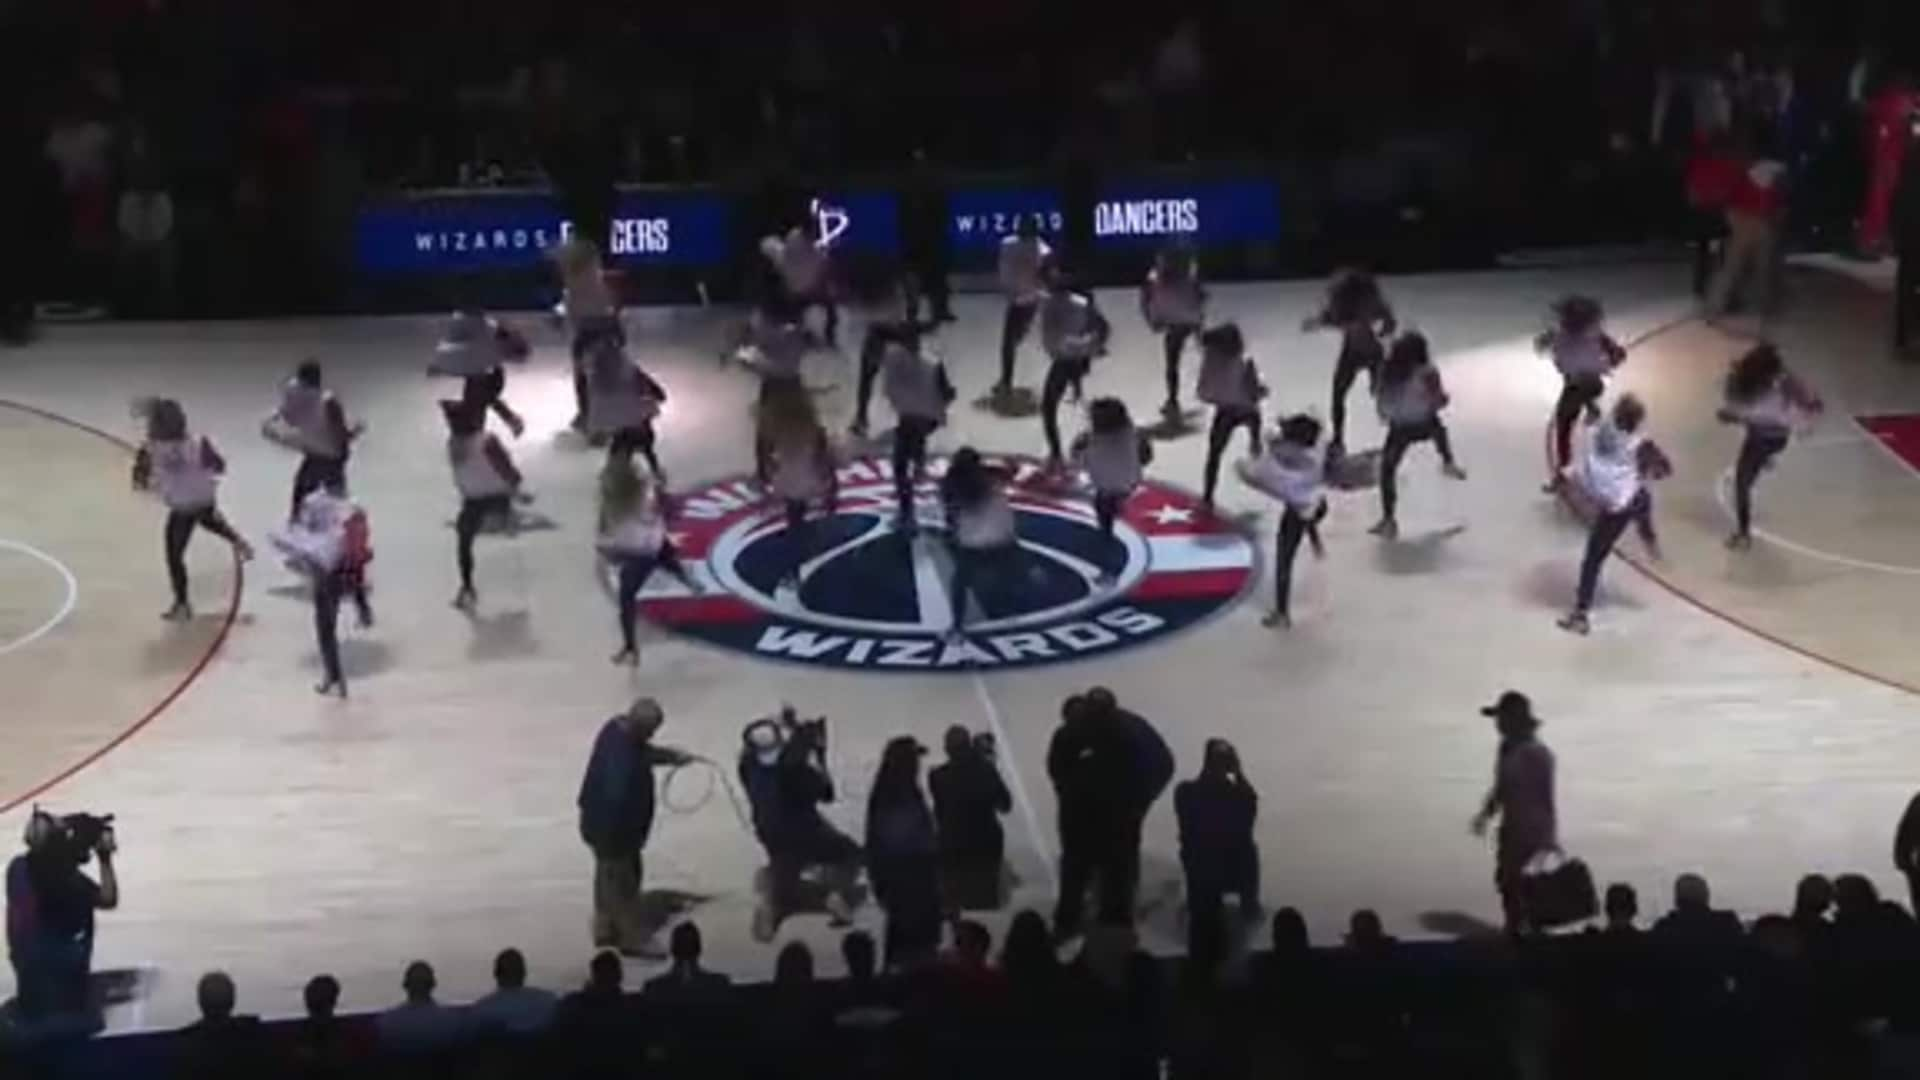 Wizards Dancers - 10/30/19